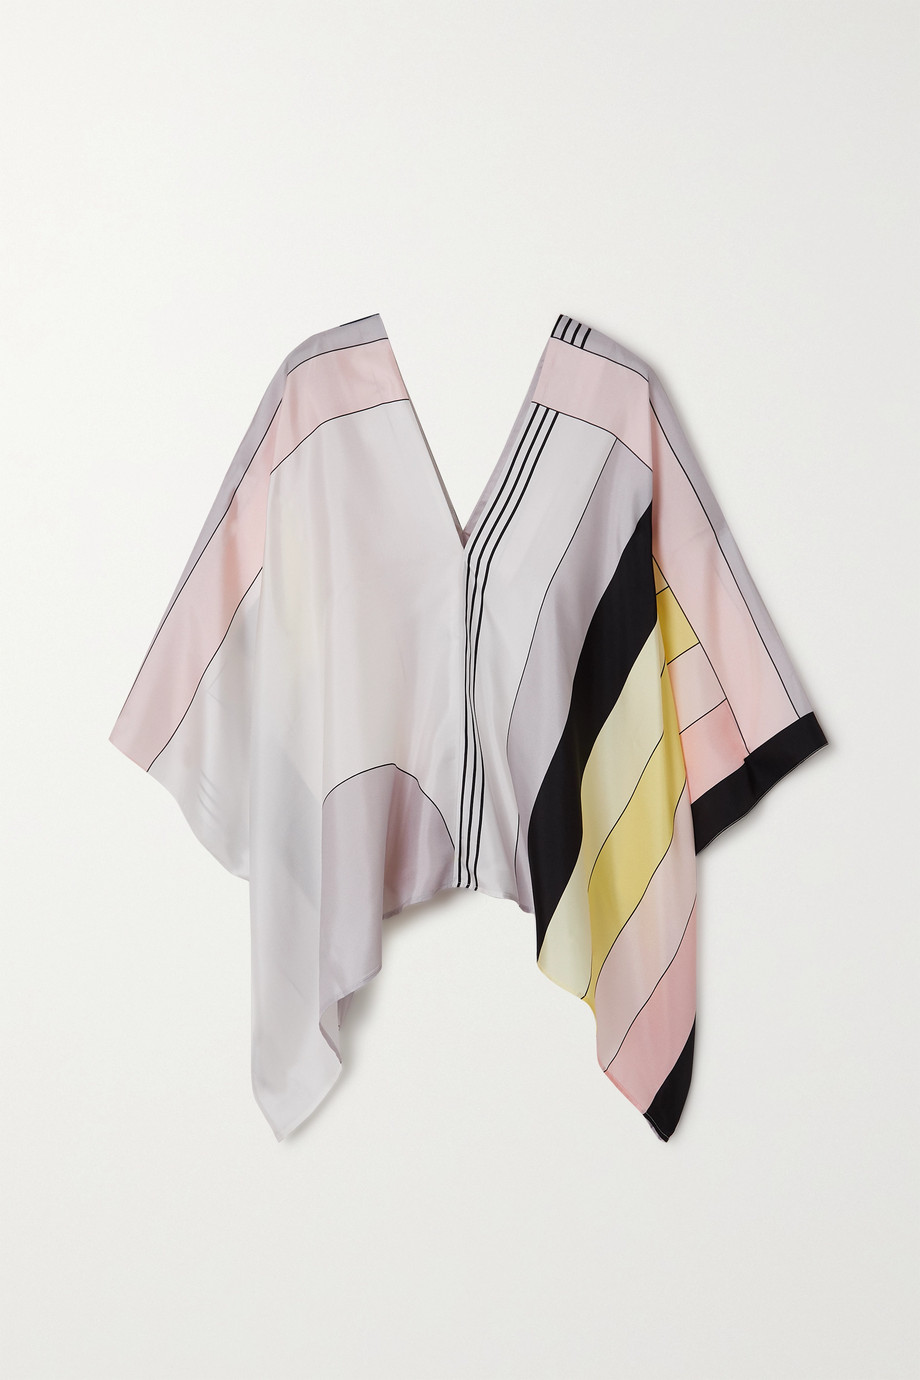 LOUISA PARRIS + NET SUSTAIN Majorca printed silk-twill top